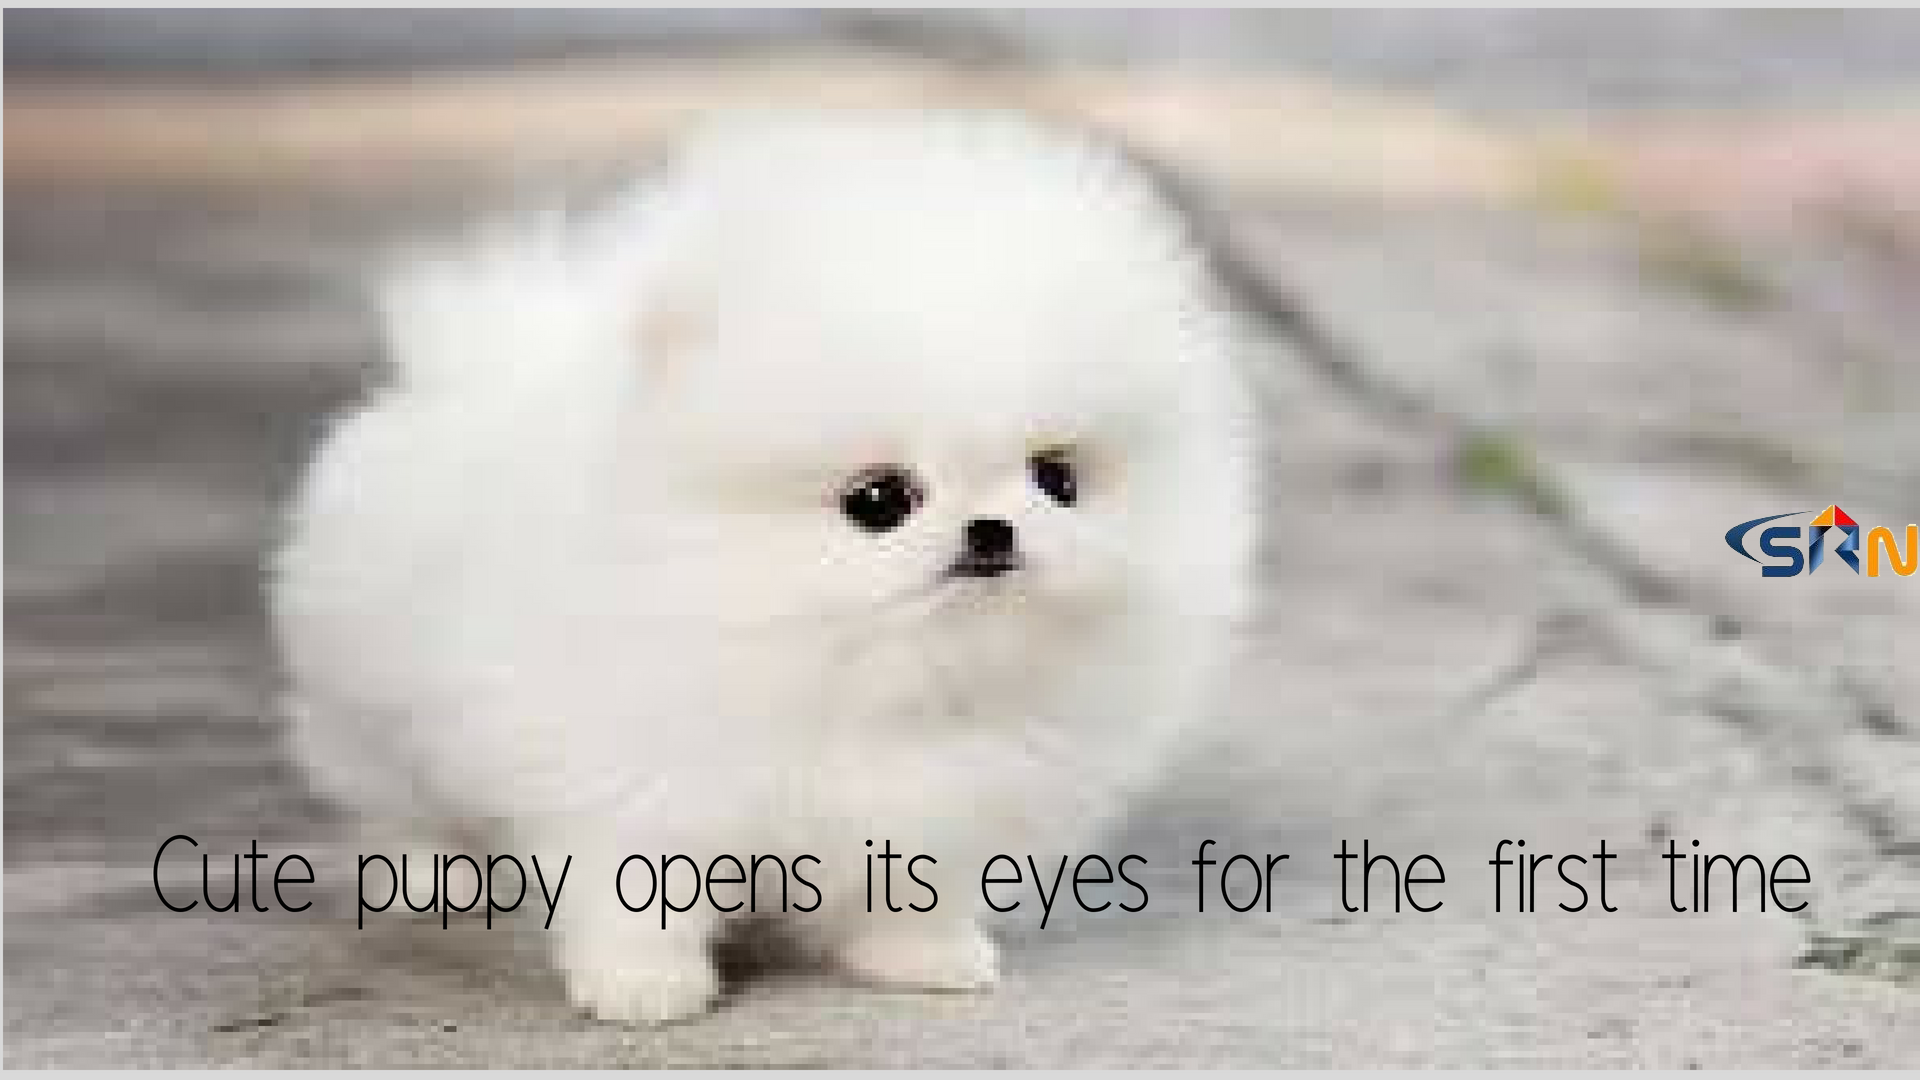 Cute Puppy opens its eyes for the first time